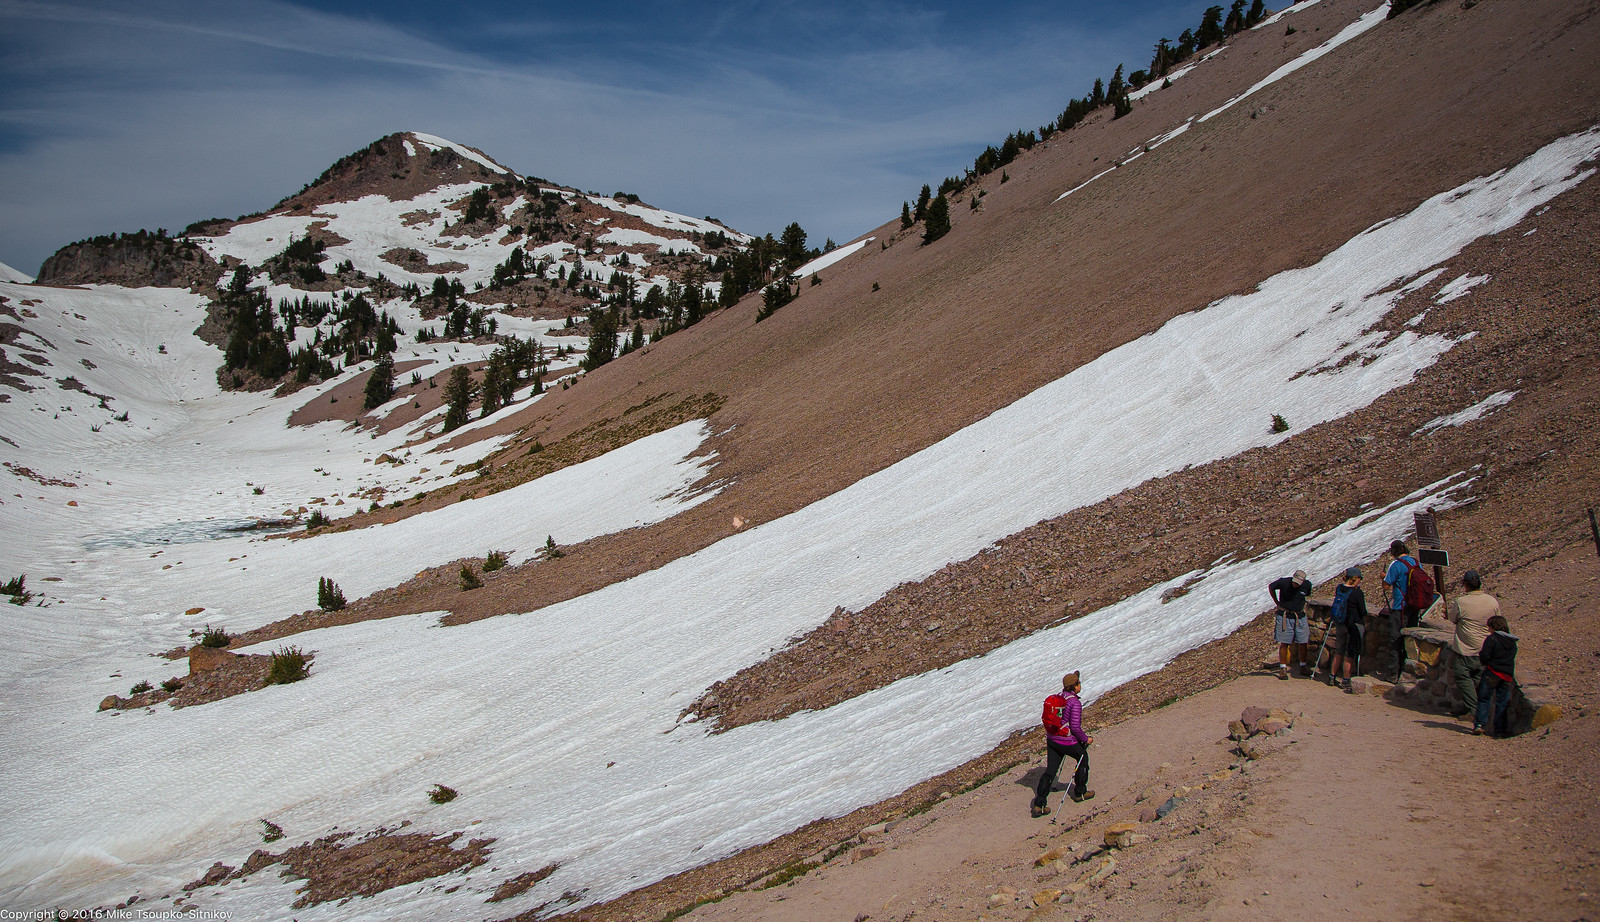 Hiking up Lassen Peak